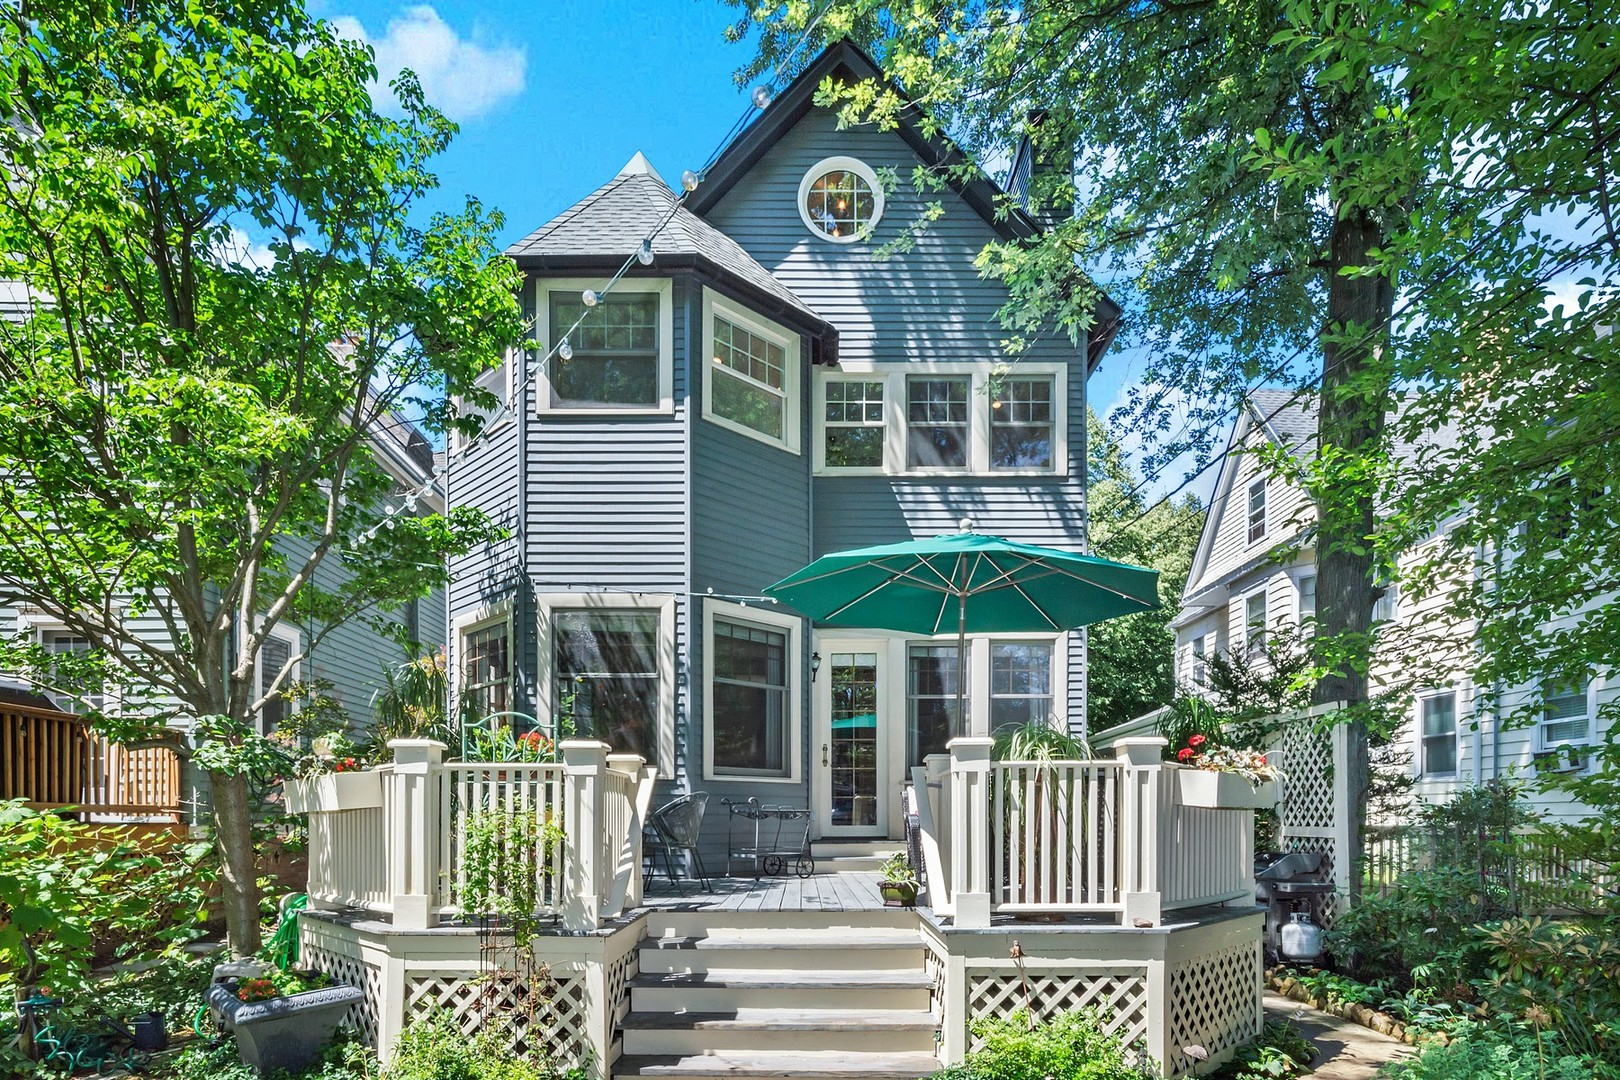 2125 Sherman, EVANSTON, Illinois, 60201